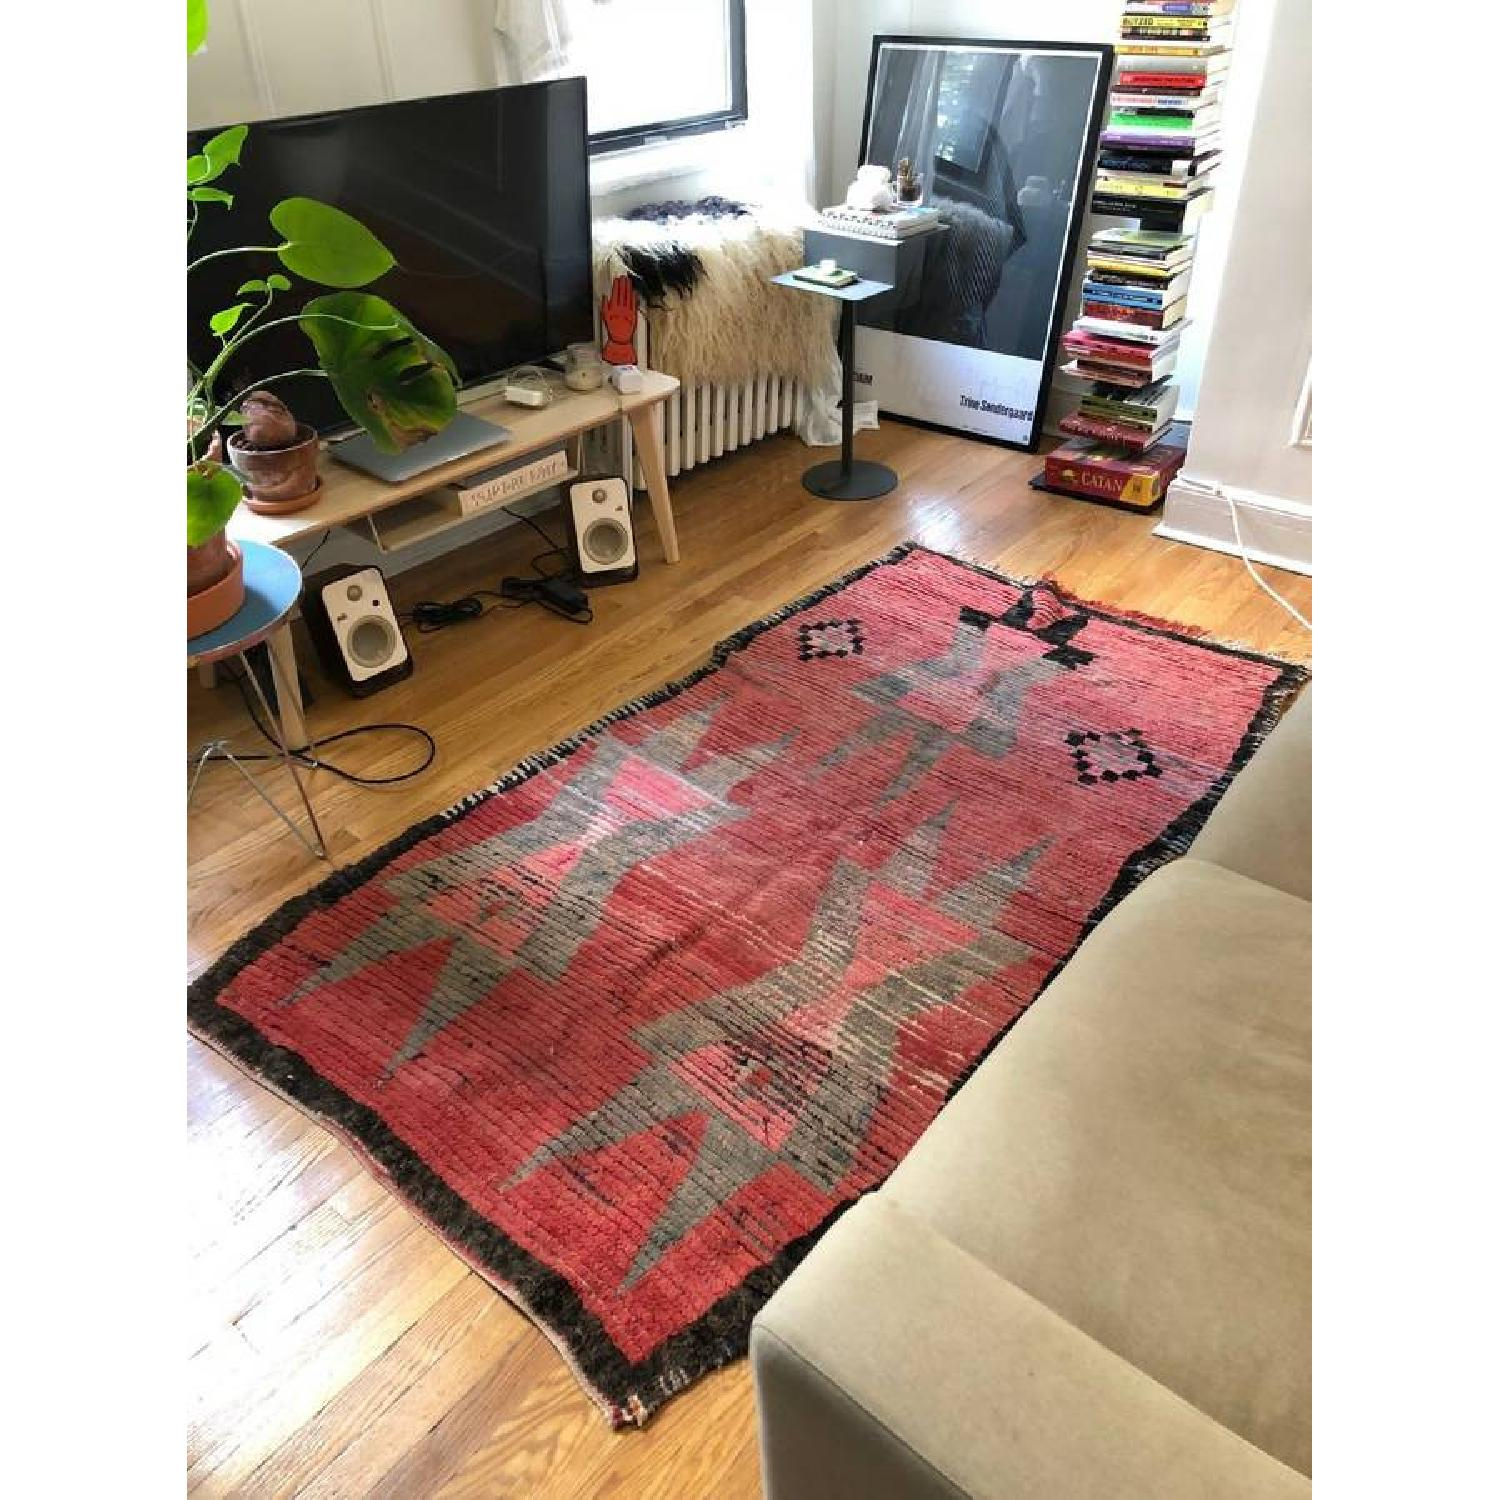 Craft Sisters Moroccan Area Rug - image-1